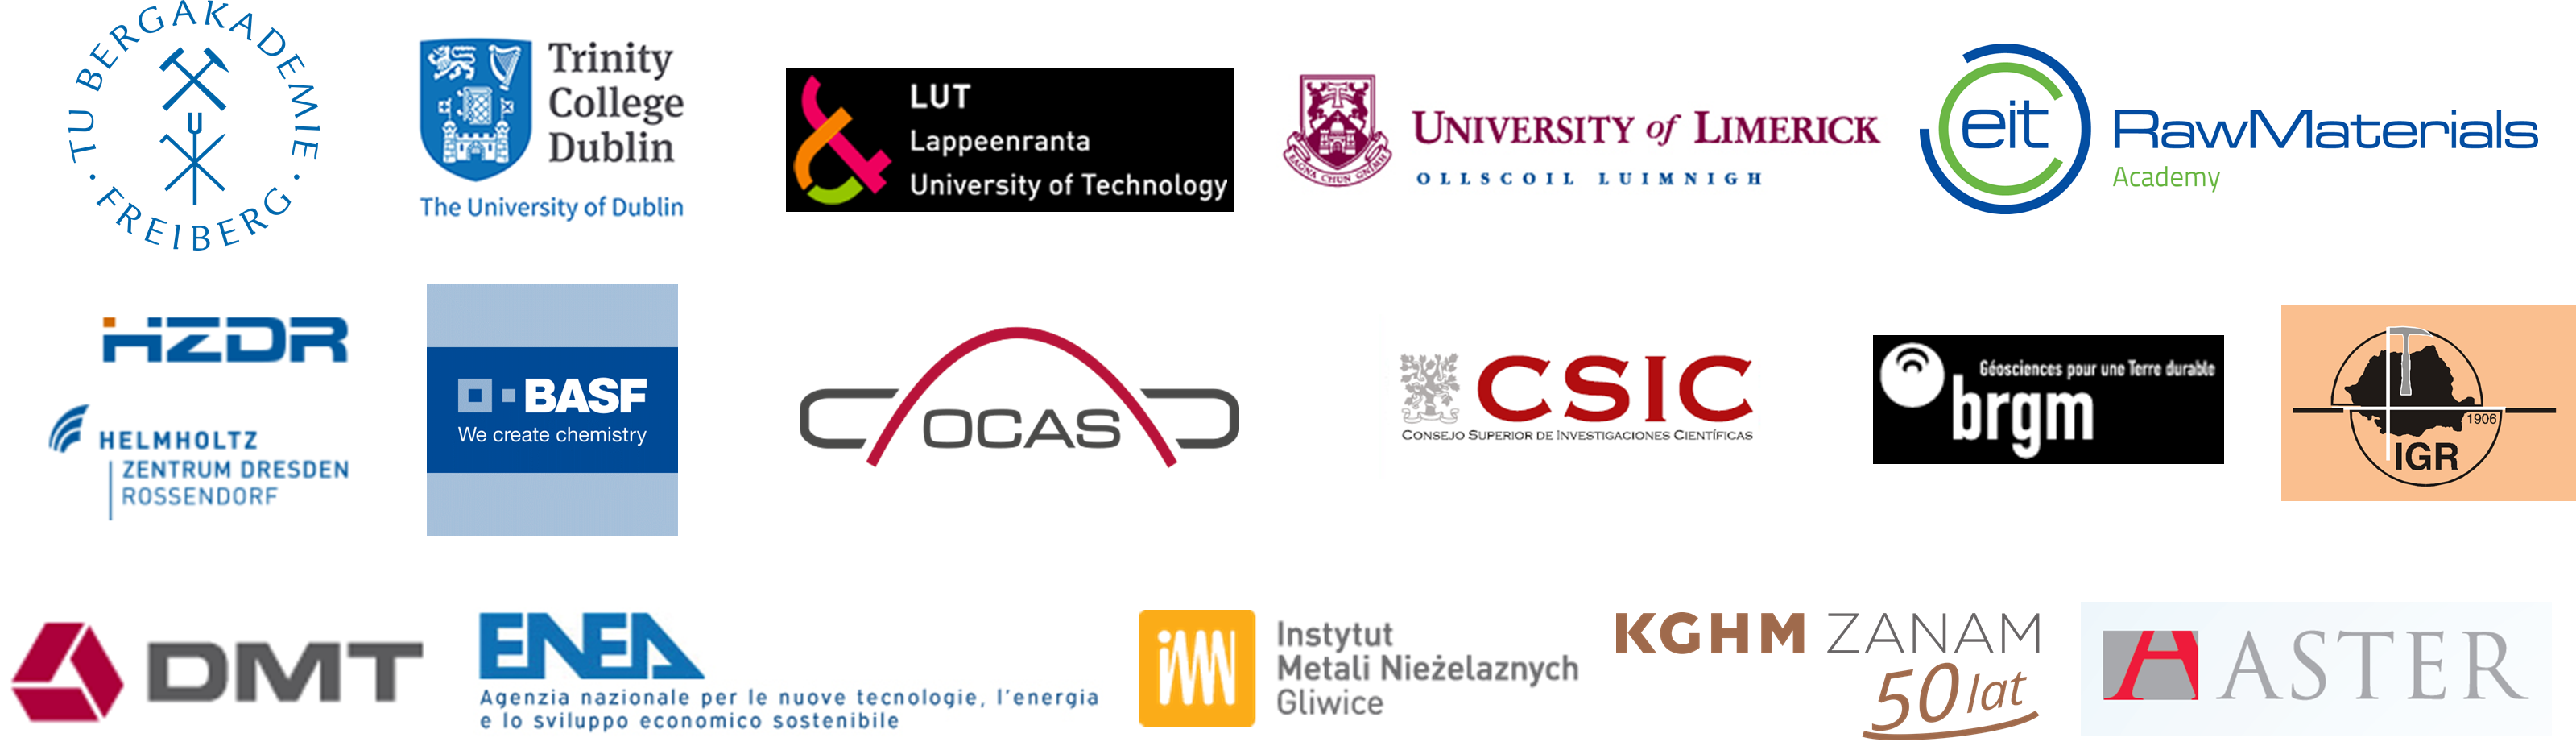 Logos of the participating organisations